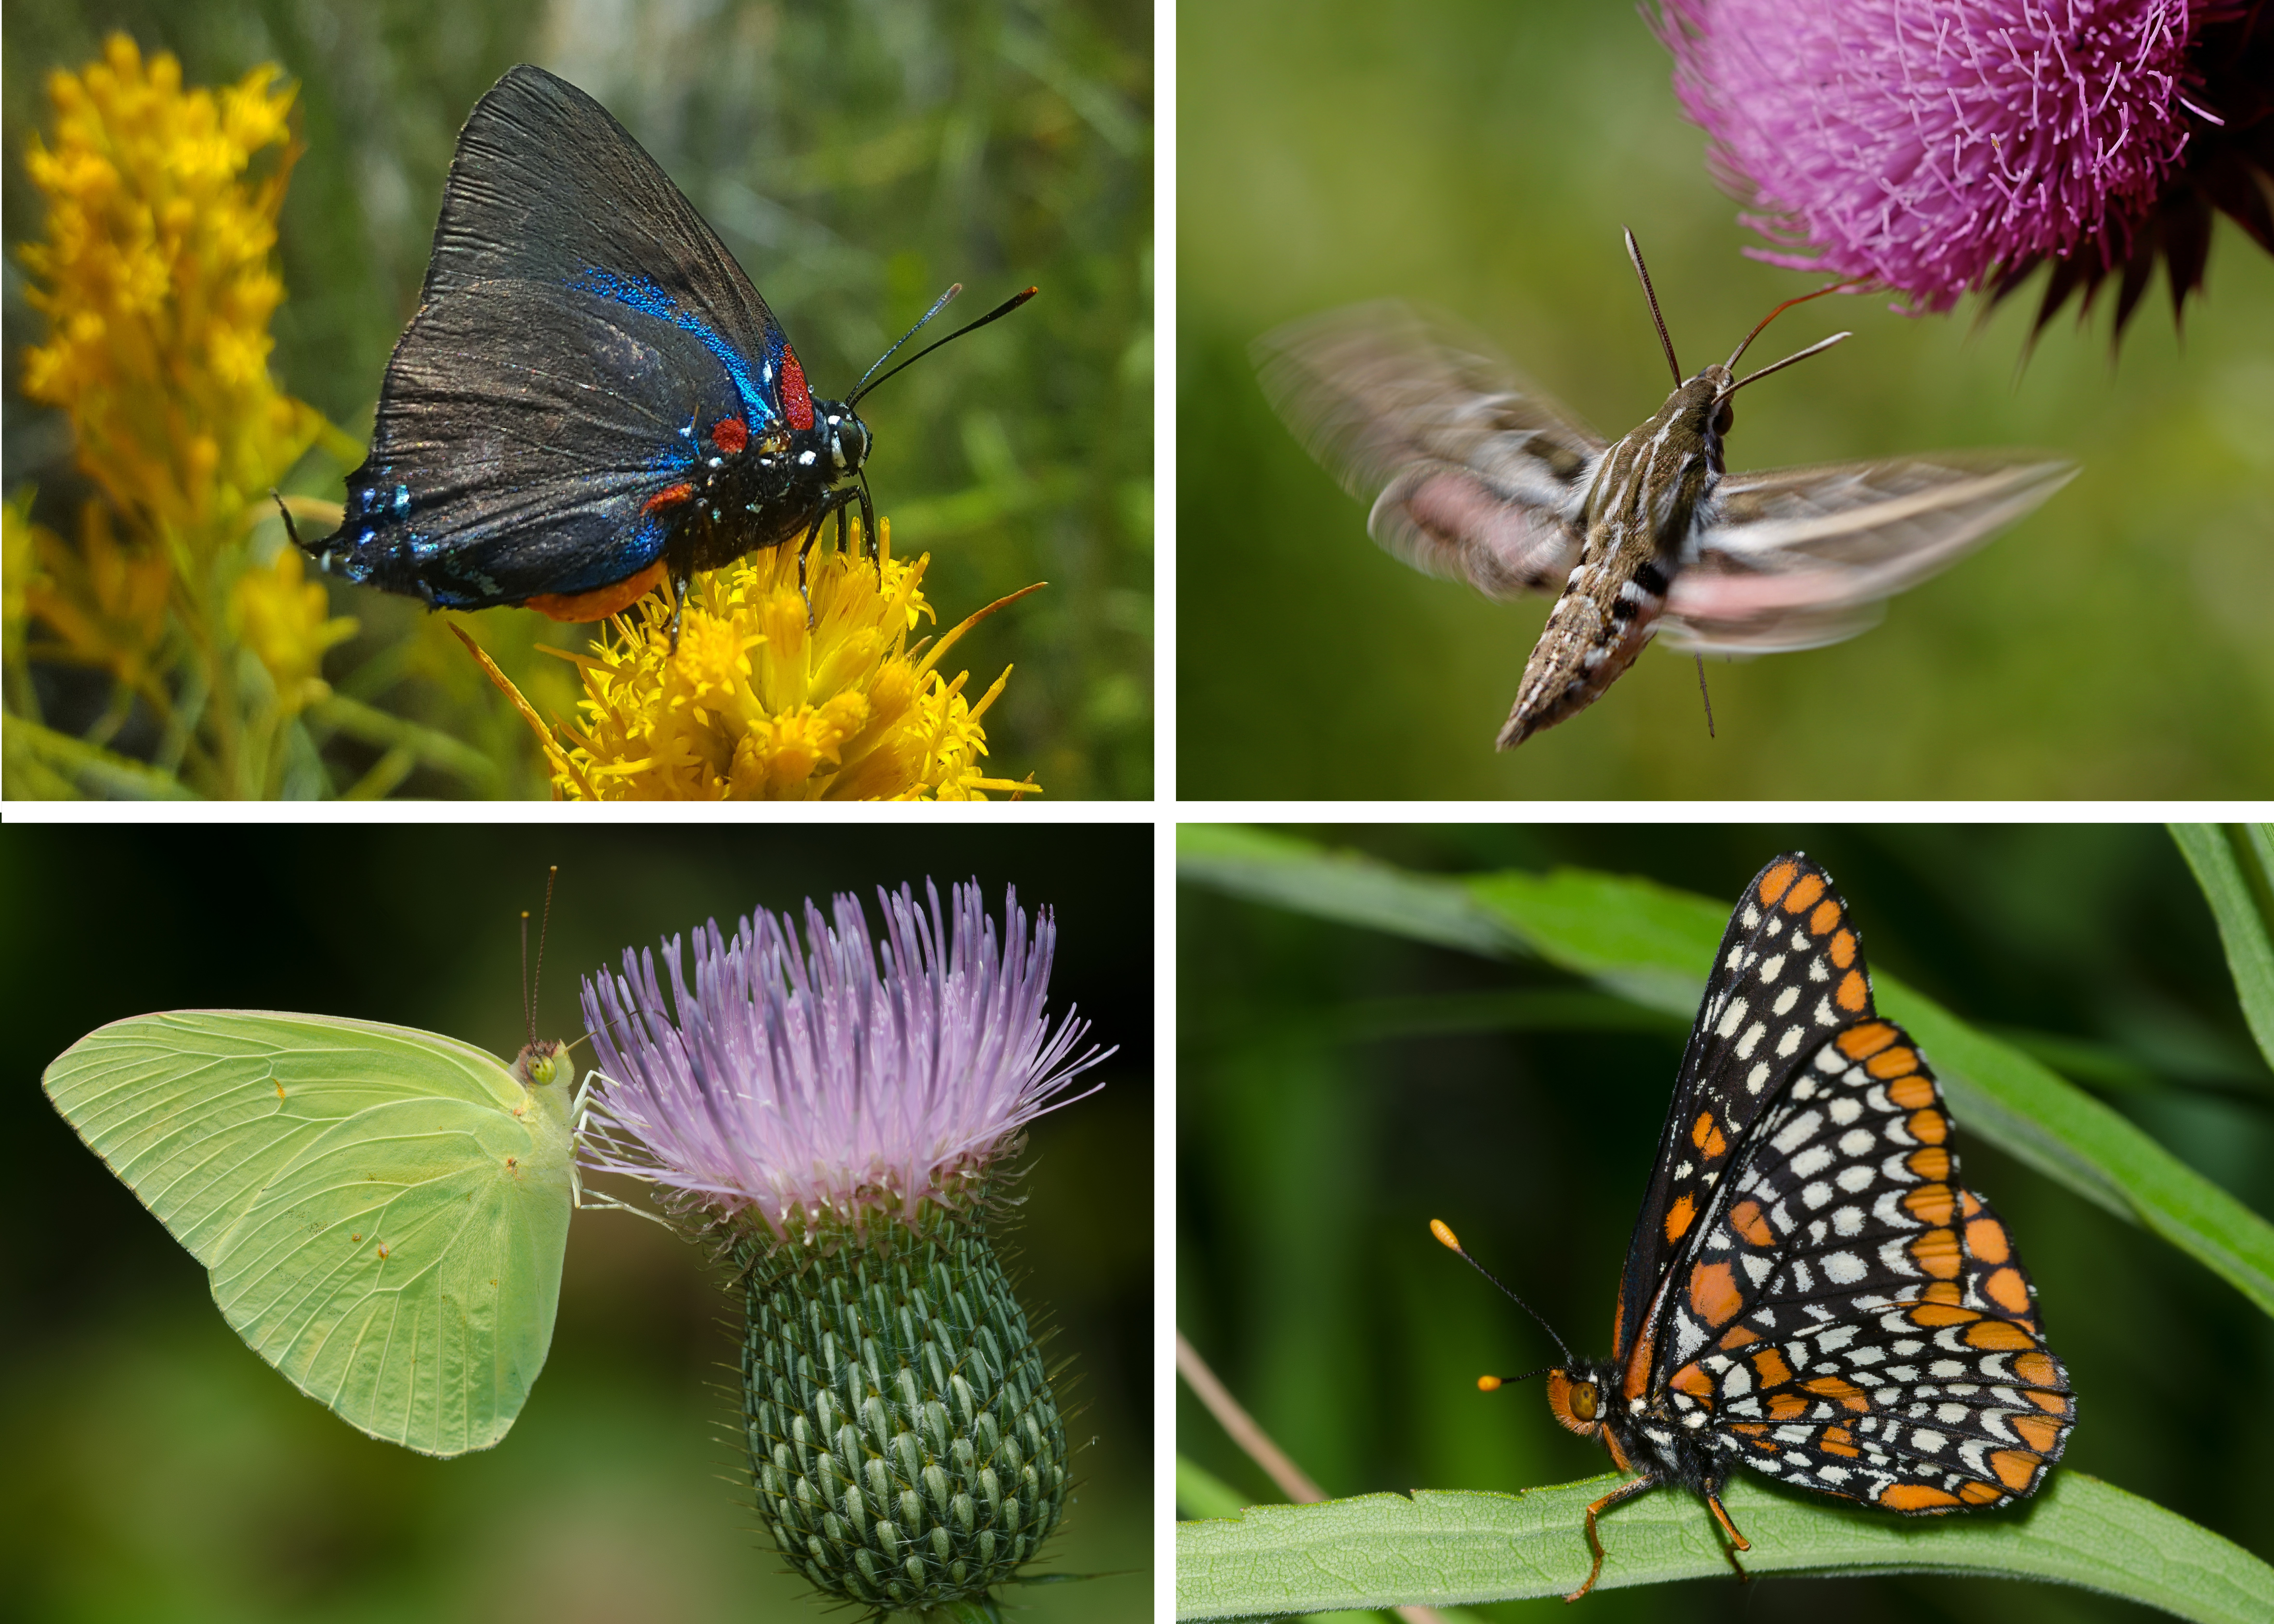 An assortment of colorful images of butterflies and moths demonstrates the diversity within Lepidoptera.